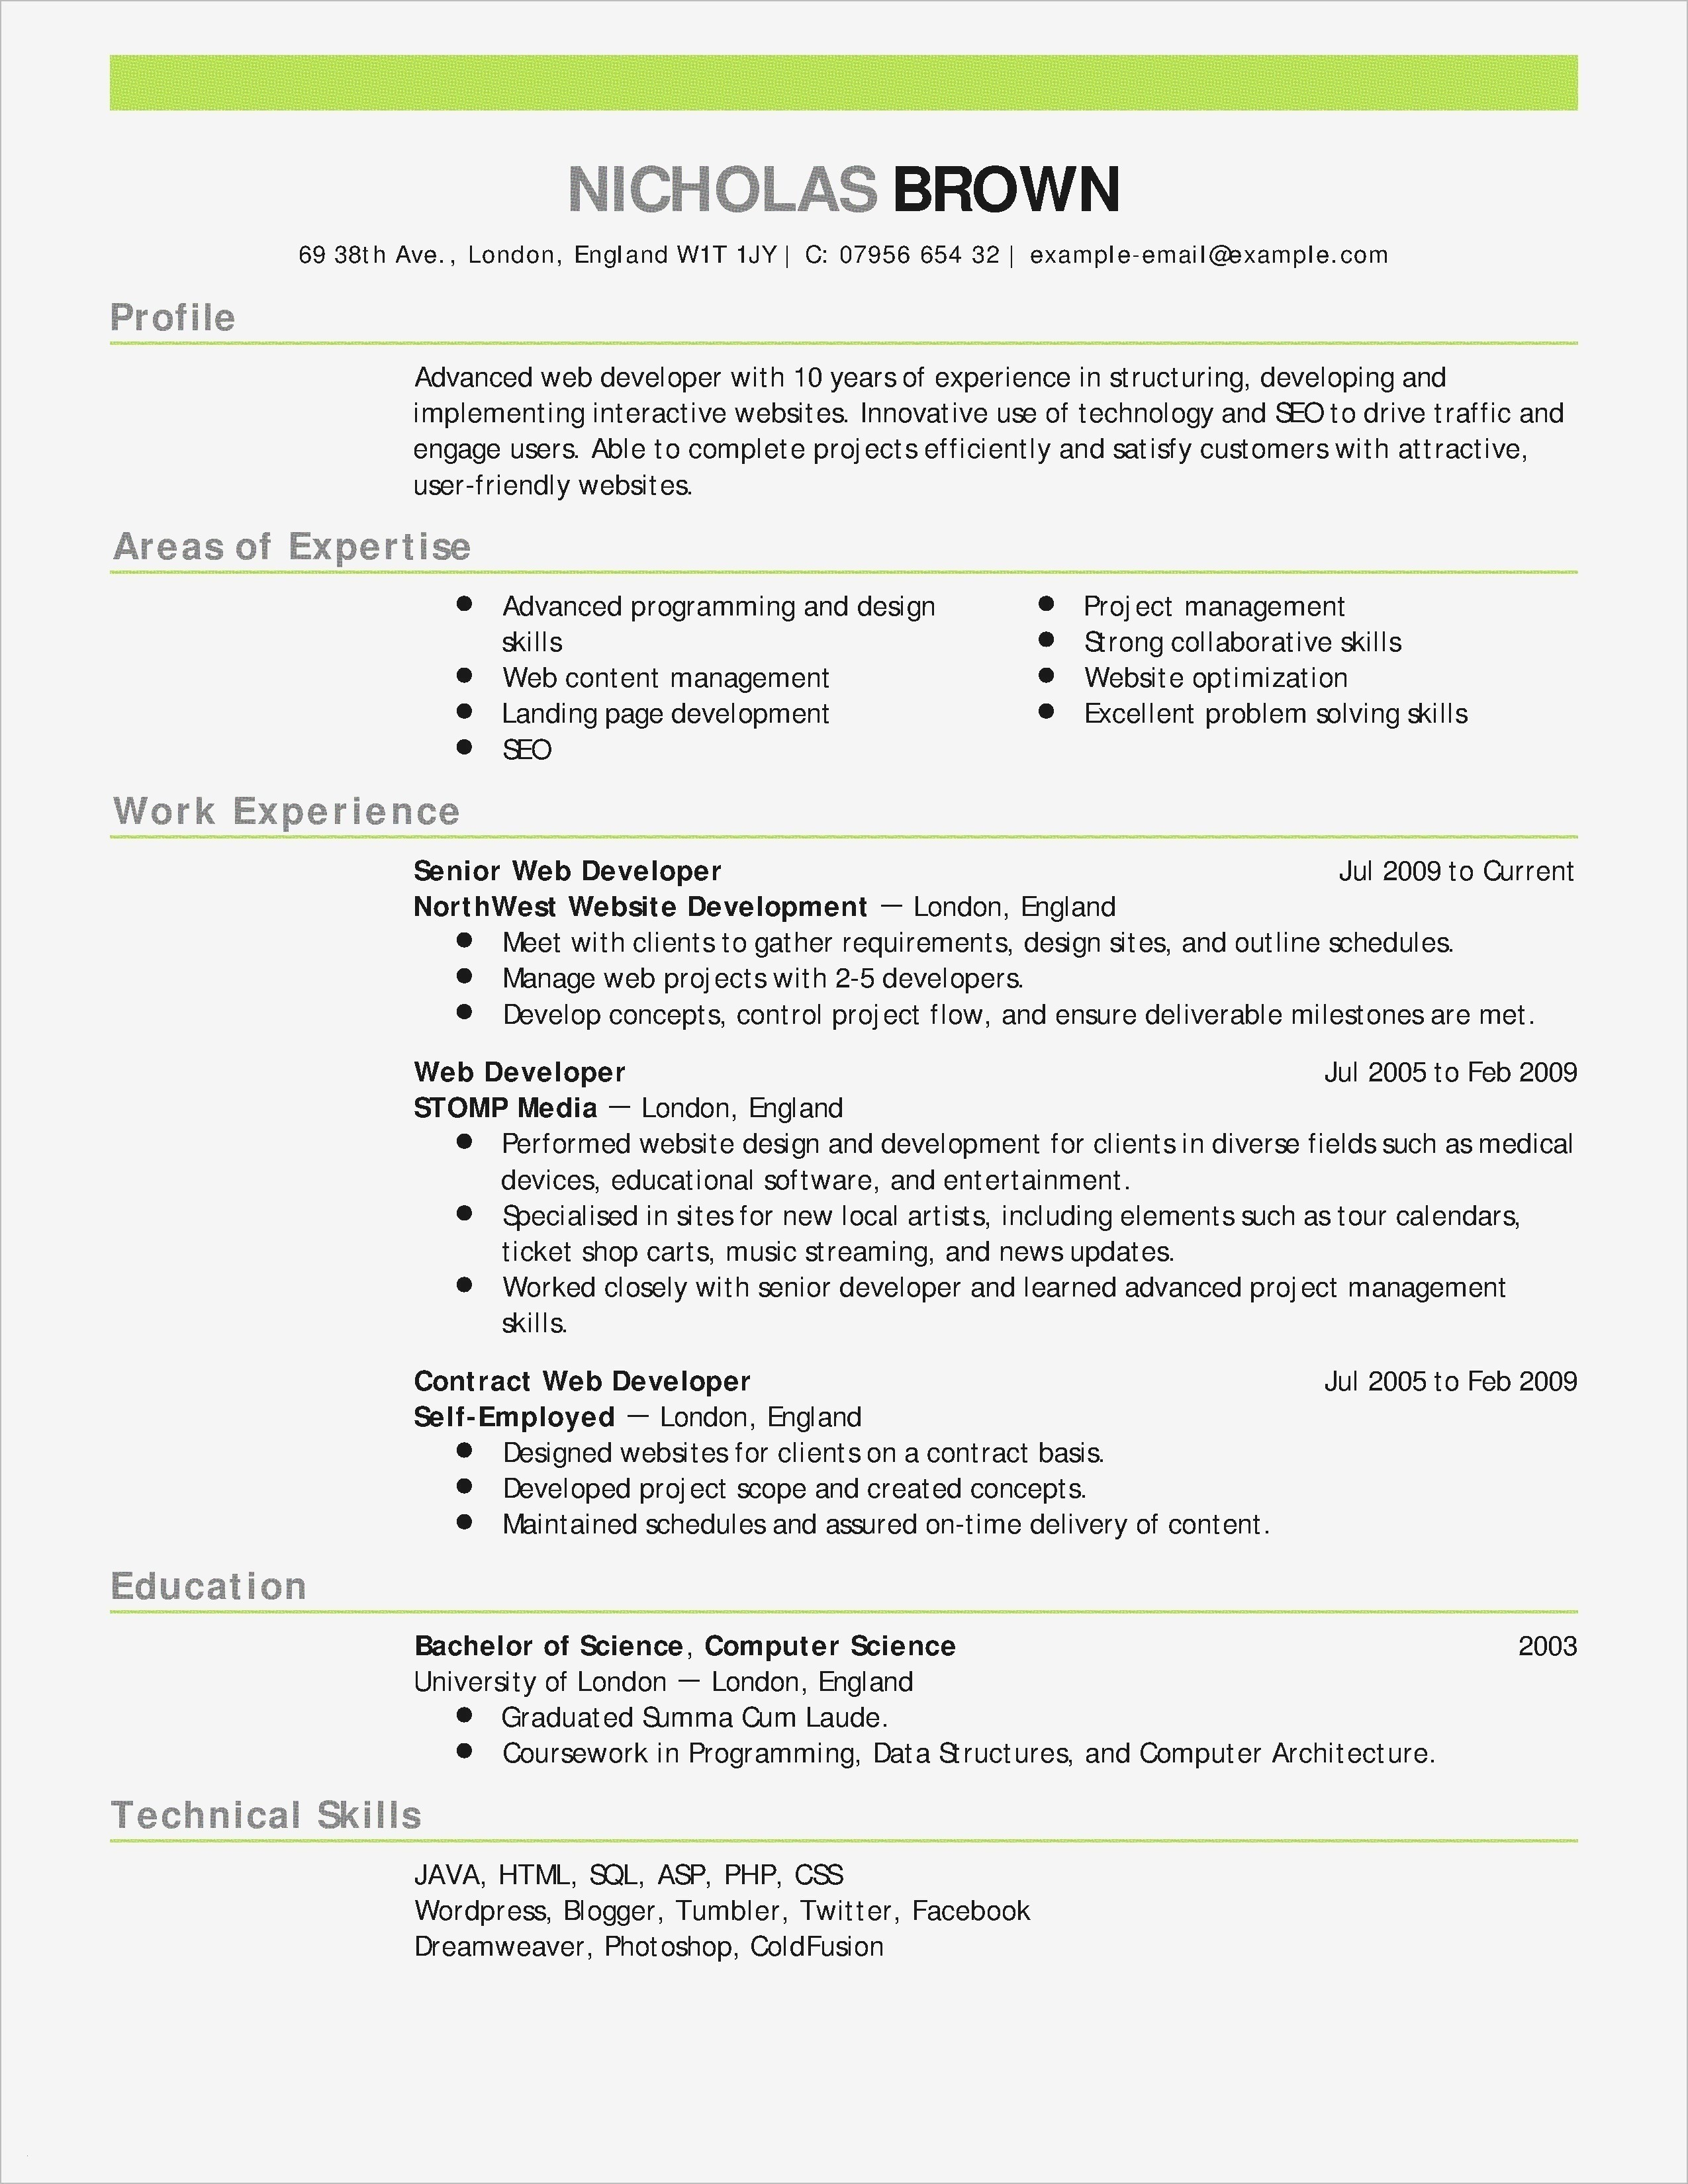 Best Way to Make A Resume - 23 How to Make Your Resume Look Good